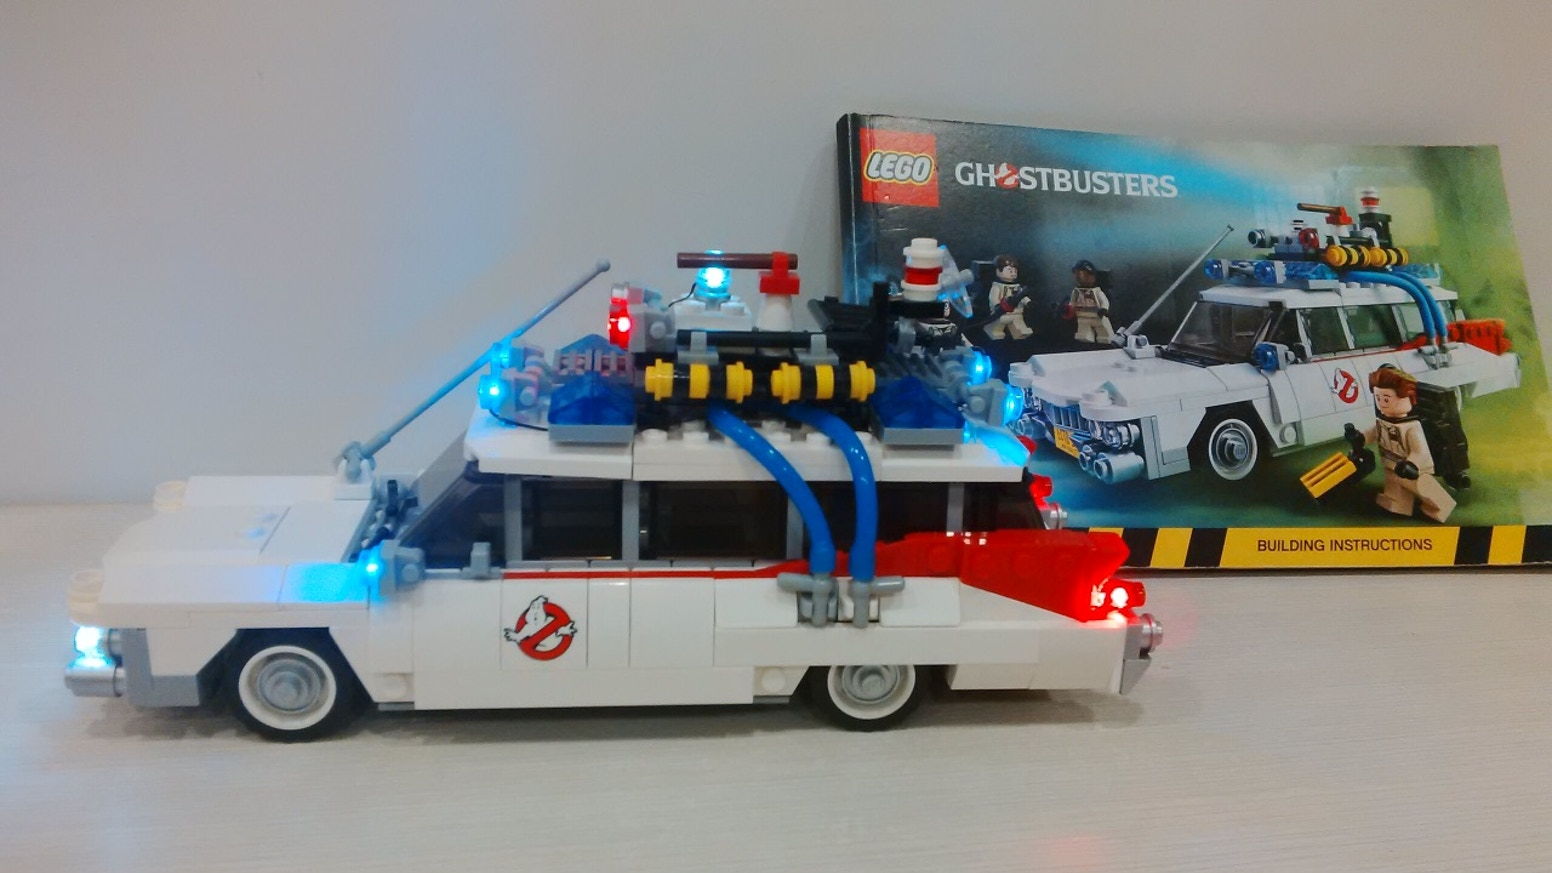 Light Up Kits For Lego 21108 Ghostbusters Ecto 1 By 3direction 75828 Ampamp 2 Kit The Classic Usb Power